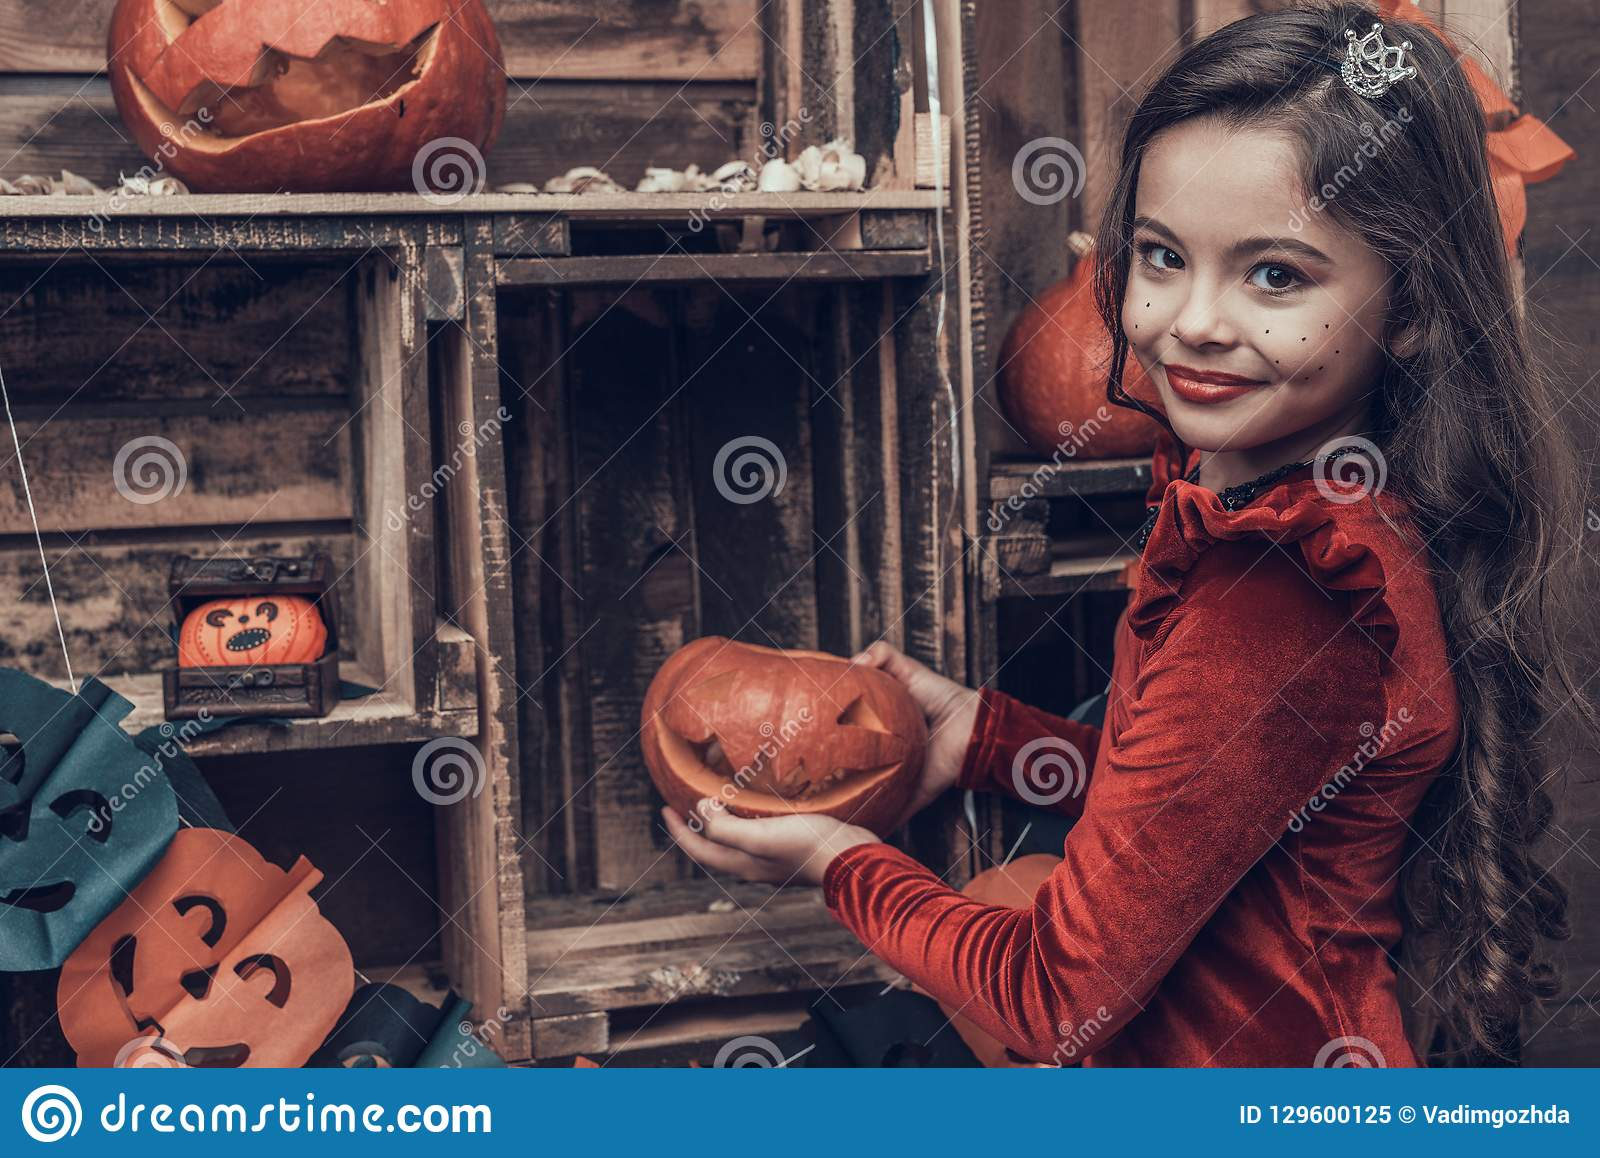 Cute Girl in Halloween Costume with Carved Pumpkin